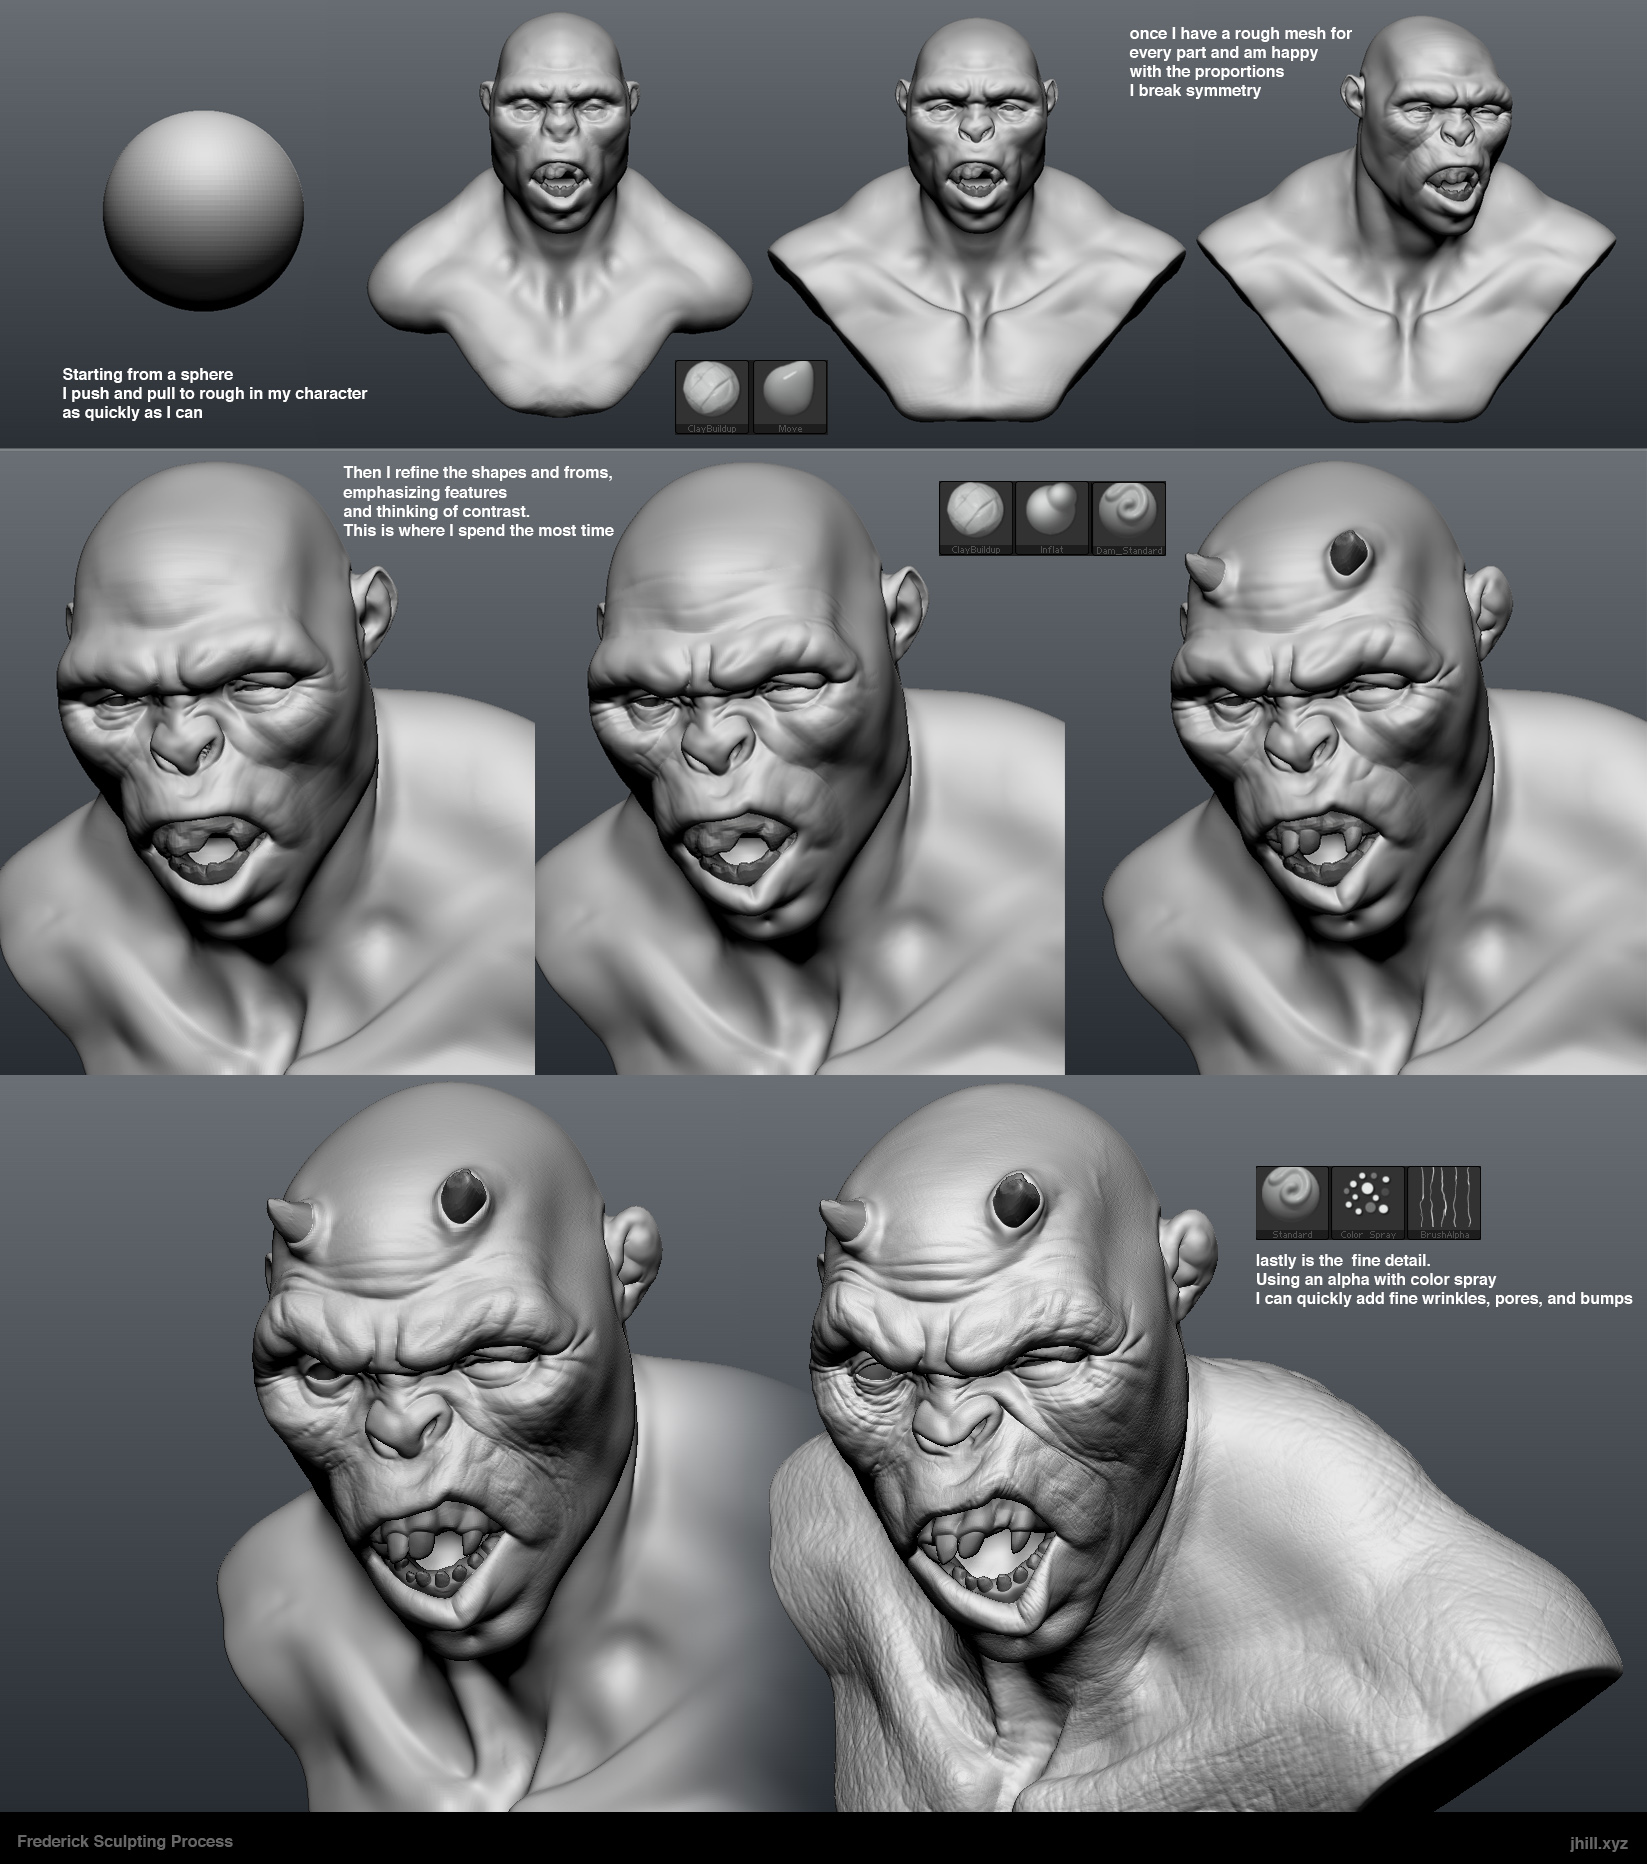 fred_sculpting_breakdown